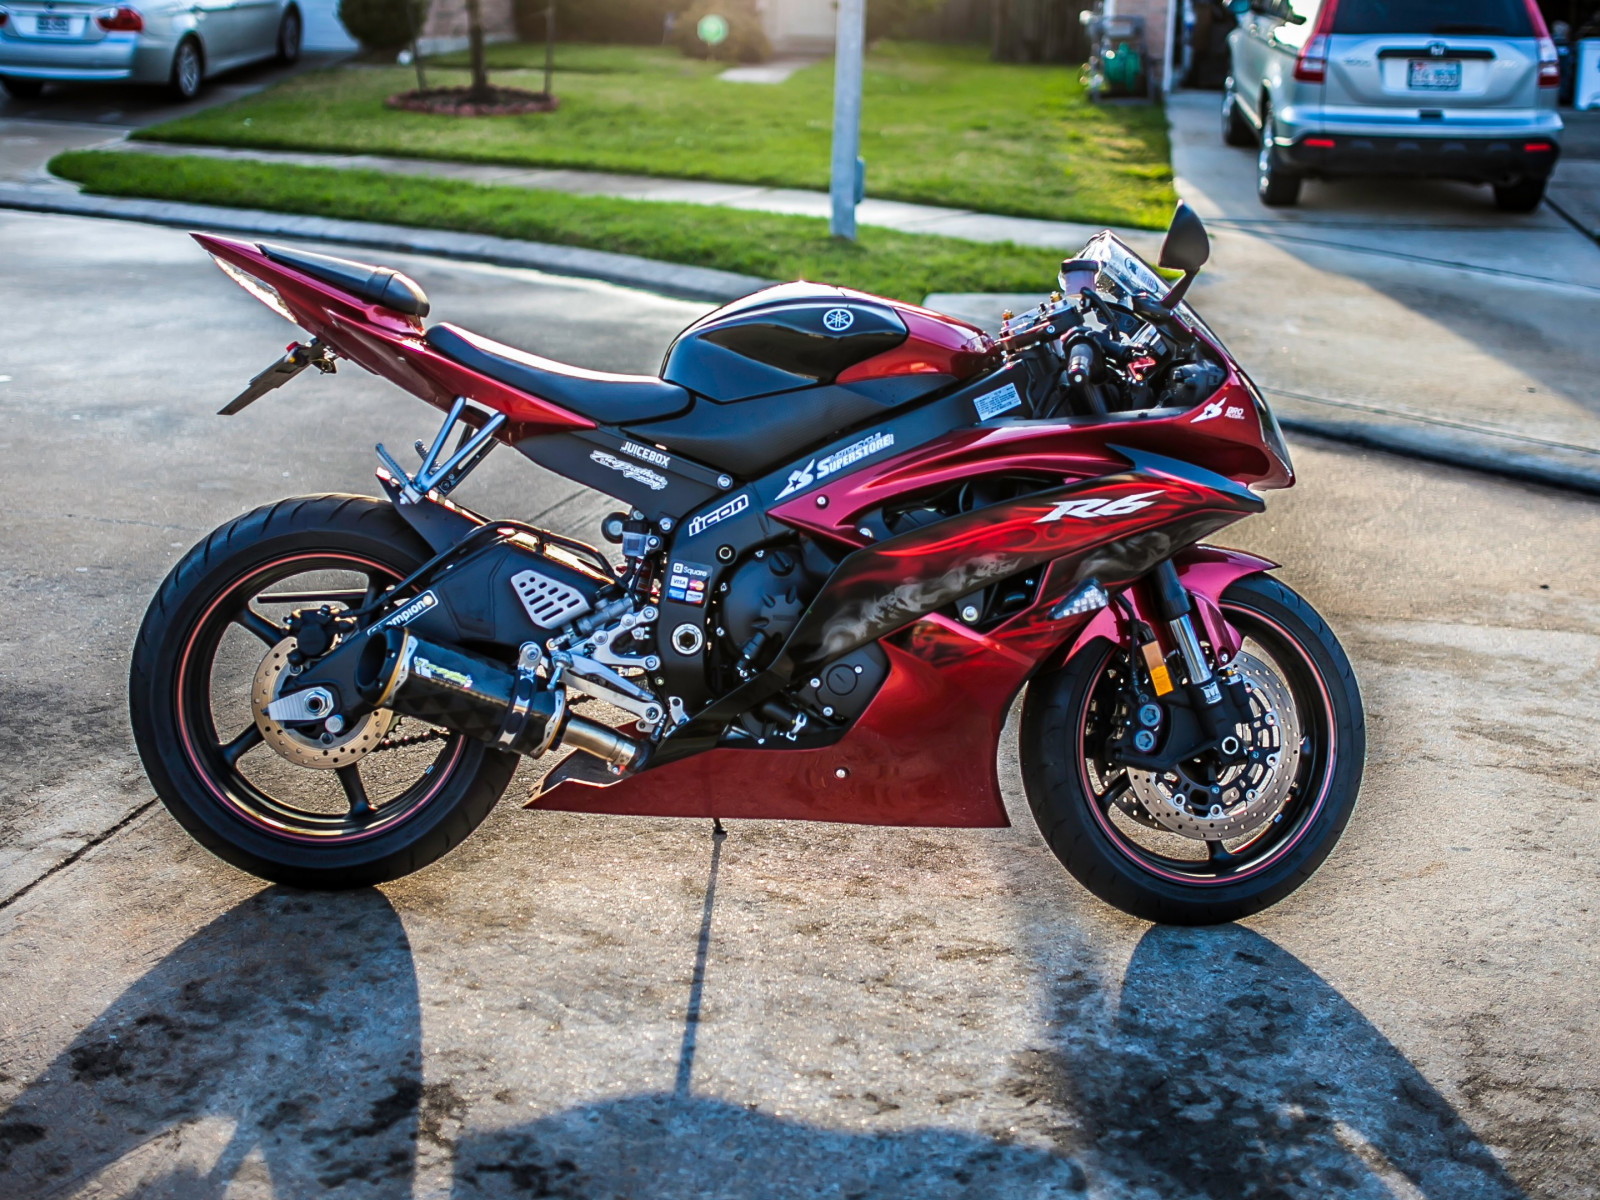 Yamaha R6 motorcycle wallpaper 1600x1200